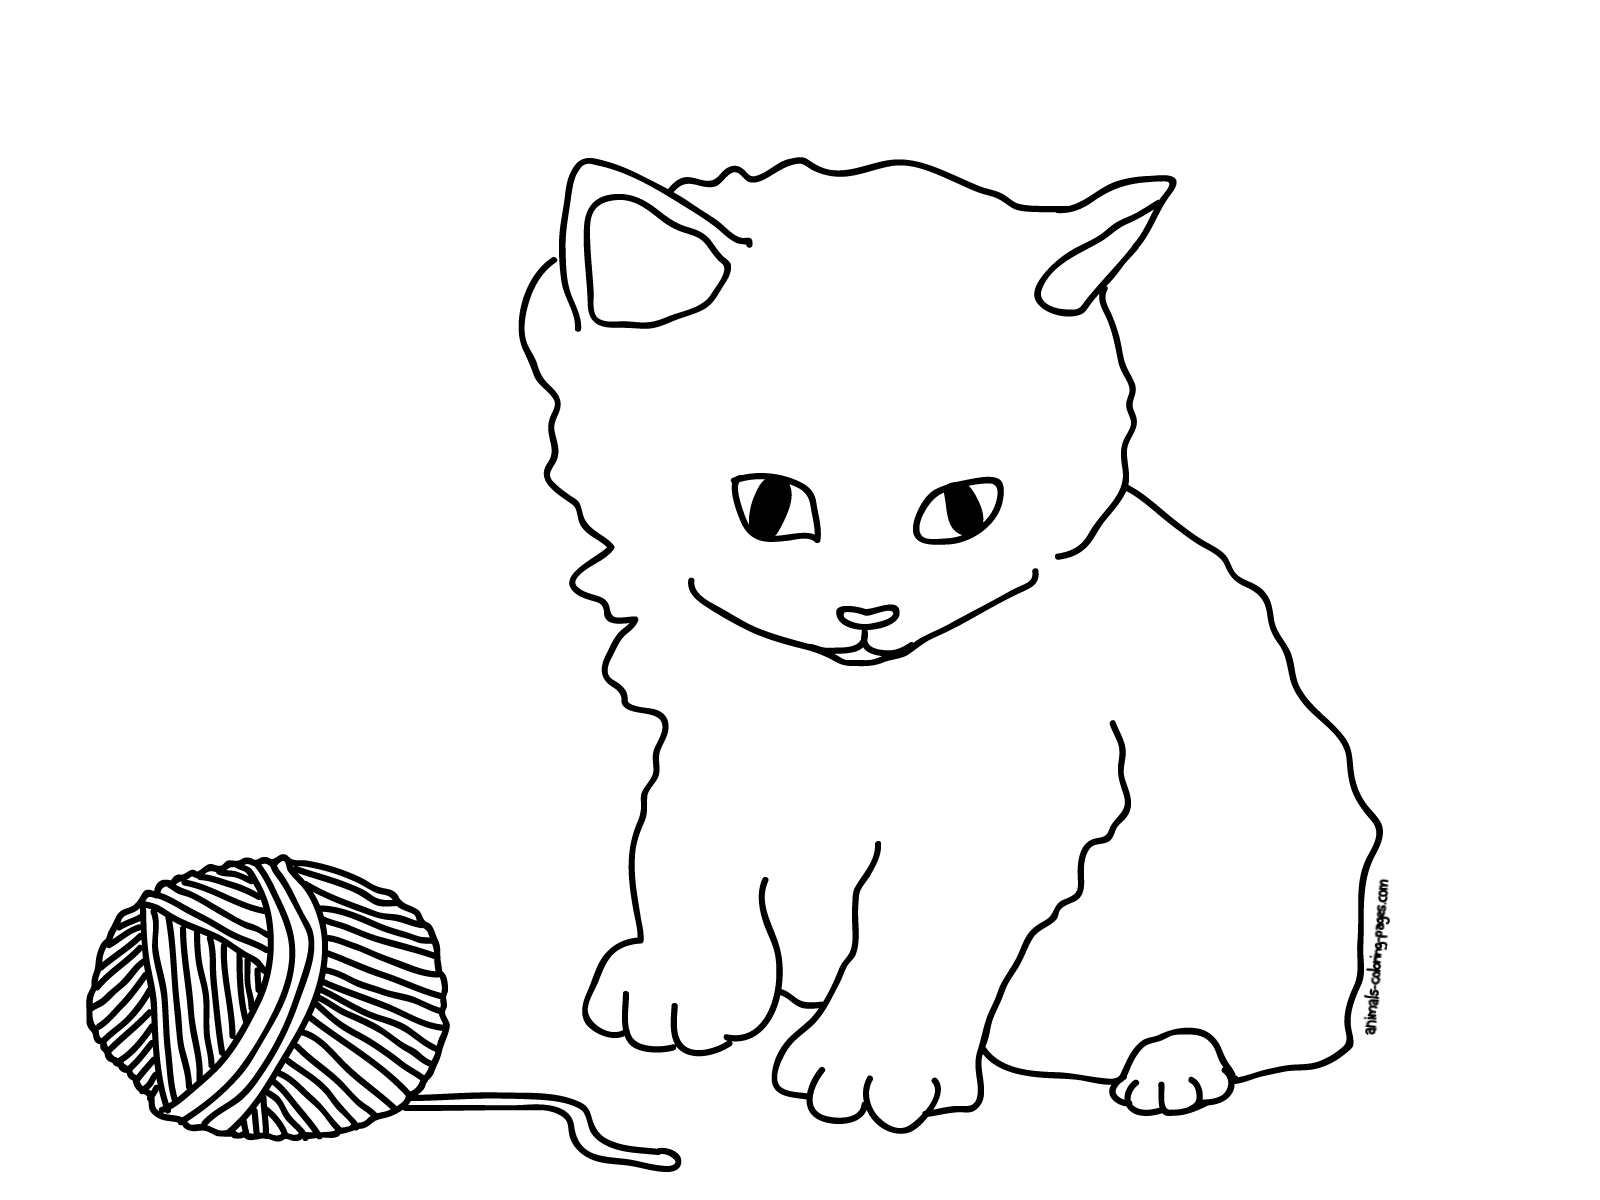 kitten coloring pictures kitten coloring pages best coloring pages for kids pictures kitten coloring